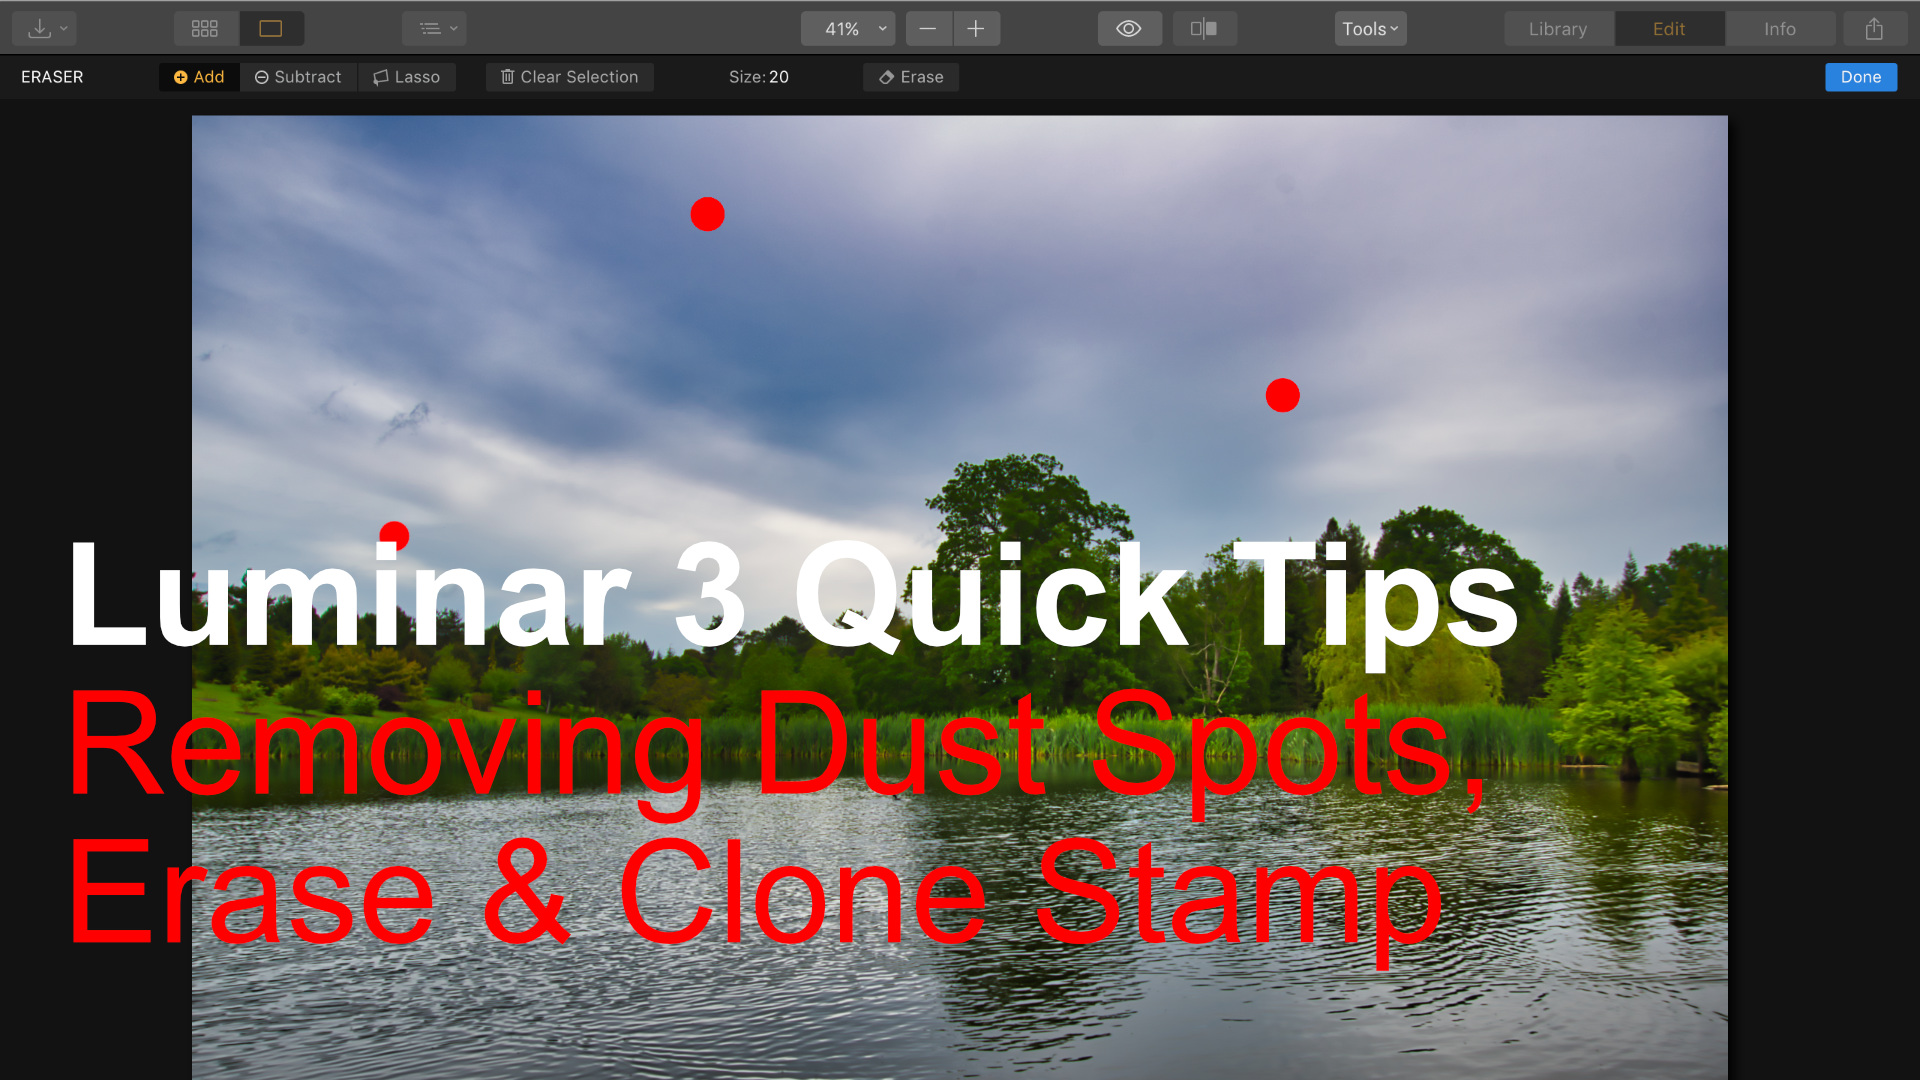 Luminar 3 Quick Tips | Removing Dust Spots, Erase & Clone Stamp